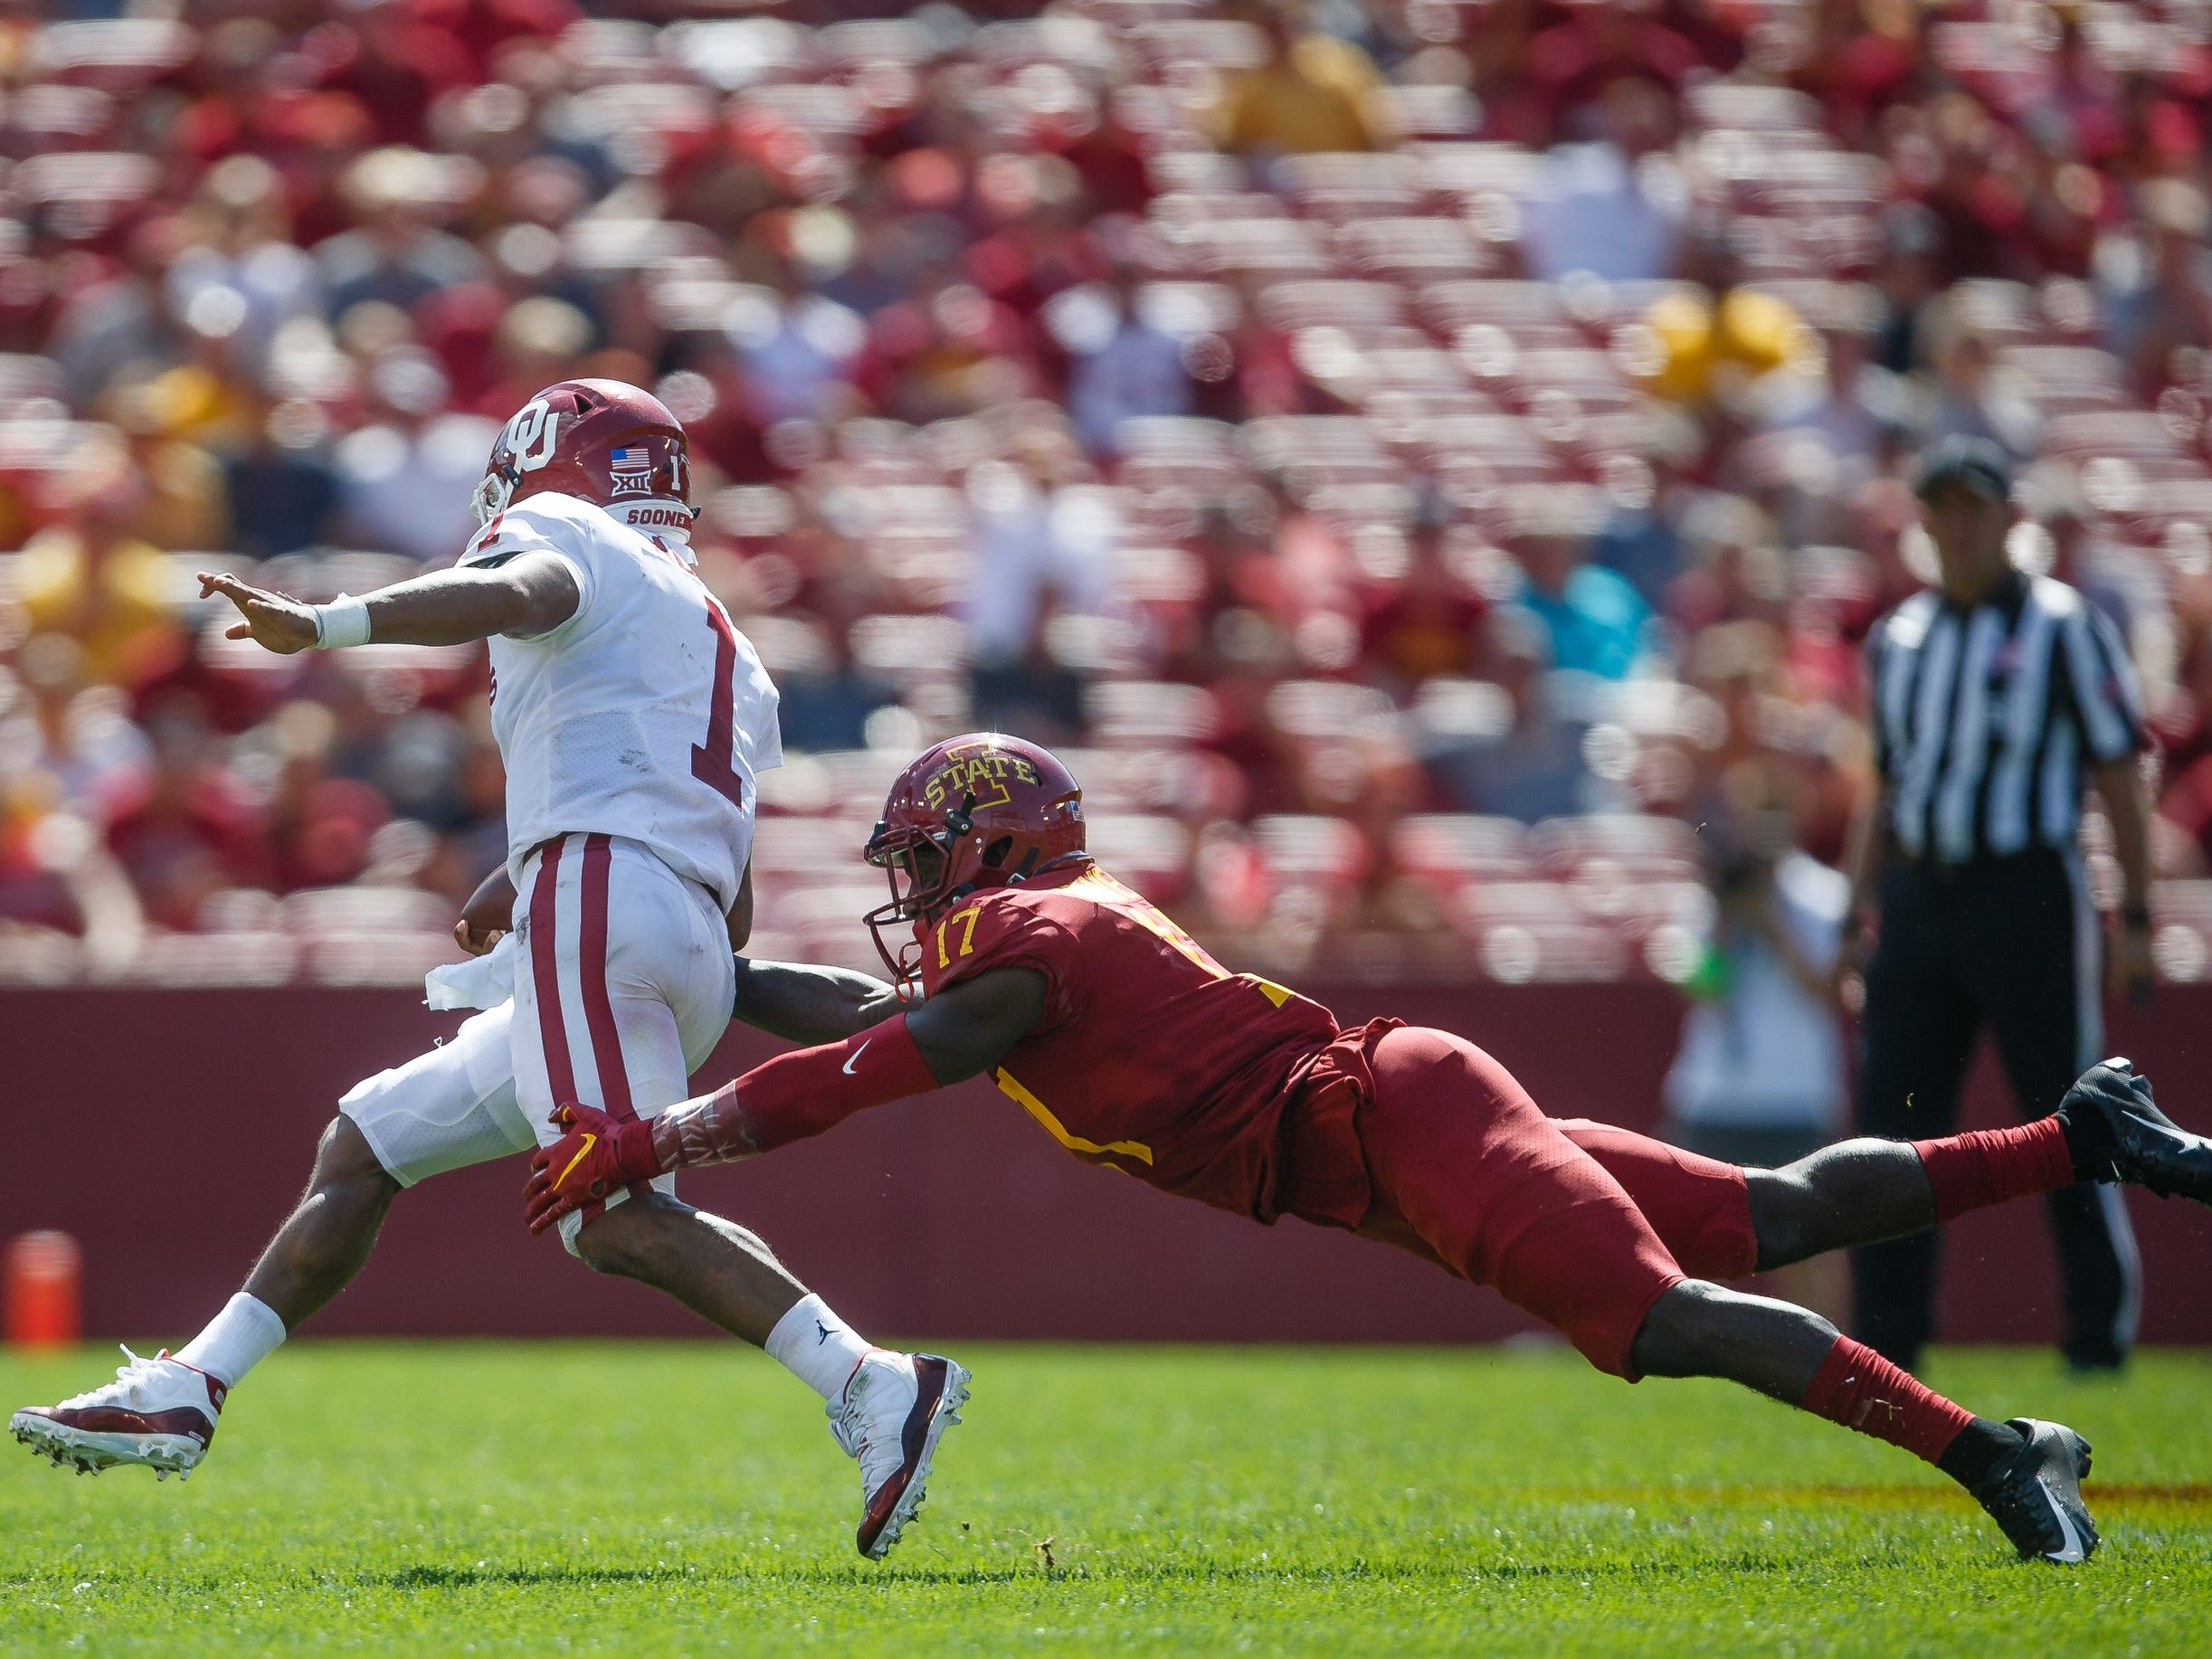 Iowa State's Richard Bowens III (17) can't get ahold of Oklahoma's Kyler Murray (1) during their football game at Jack Trice Stadium on Saturday, Sept. 15, 2018 in Ames. Oklahoma would go on to win 37-27.